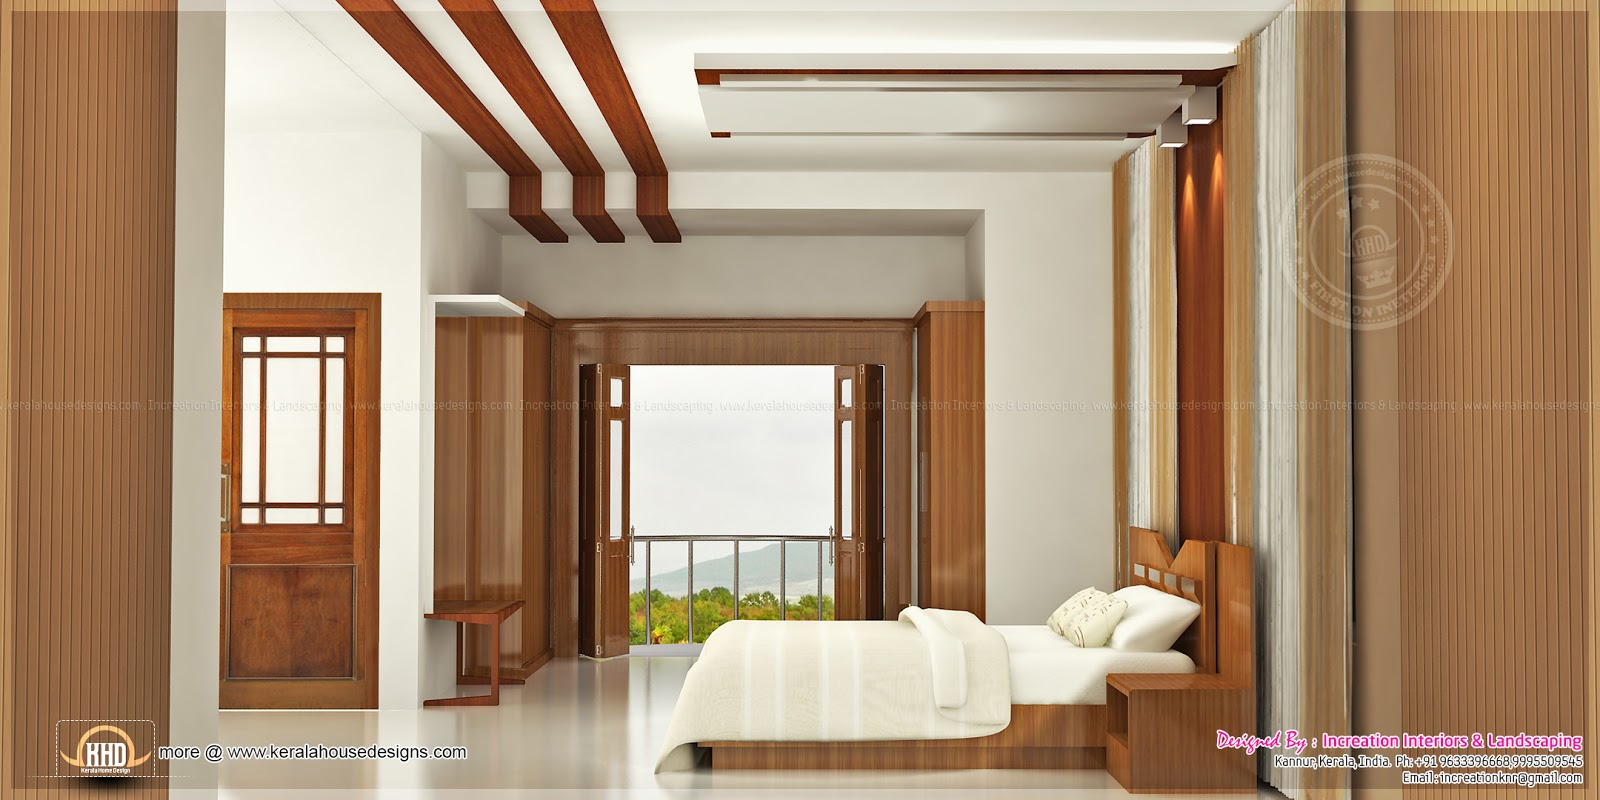 Foyer Plan Kerala : D interiors by increation kerala home design